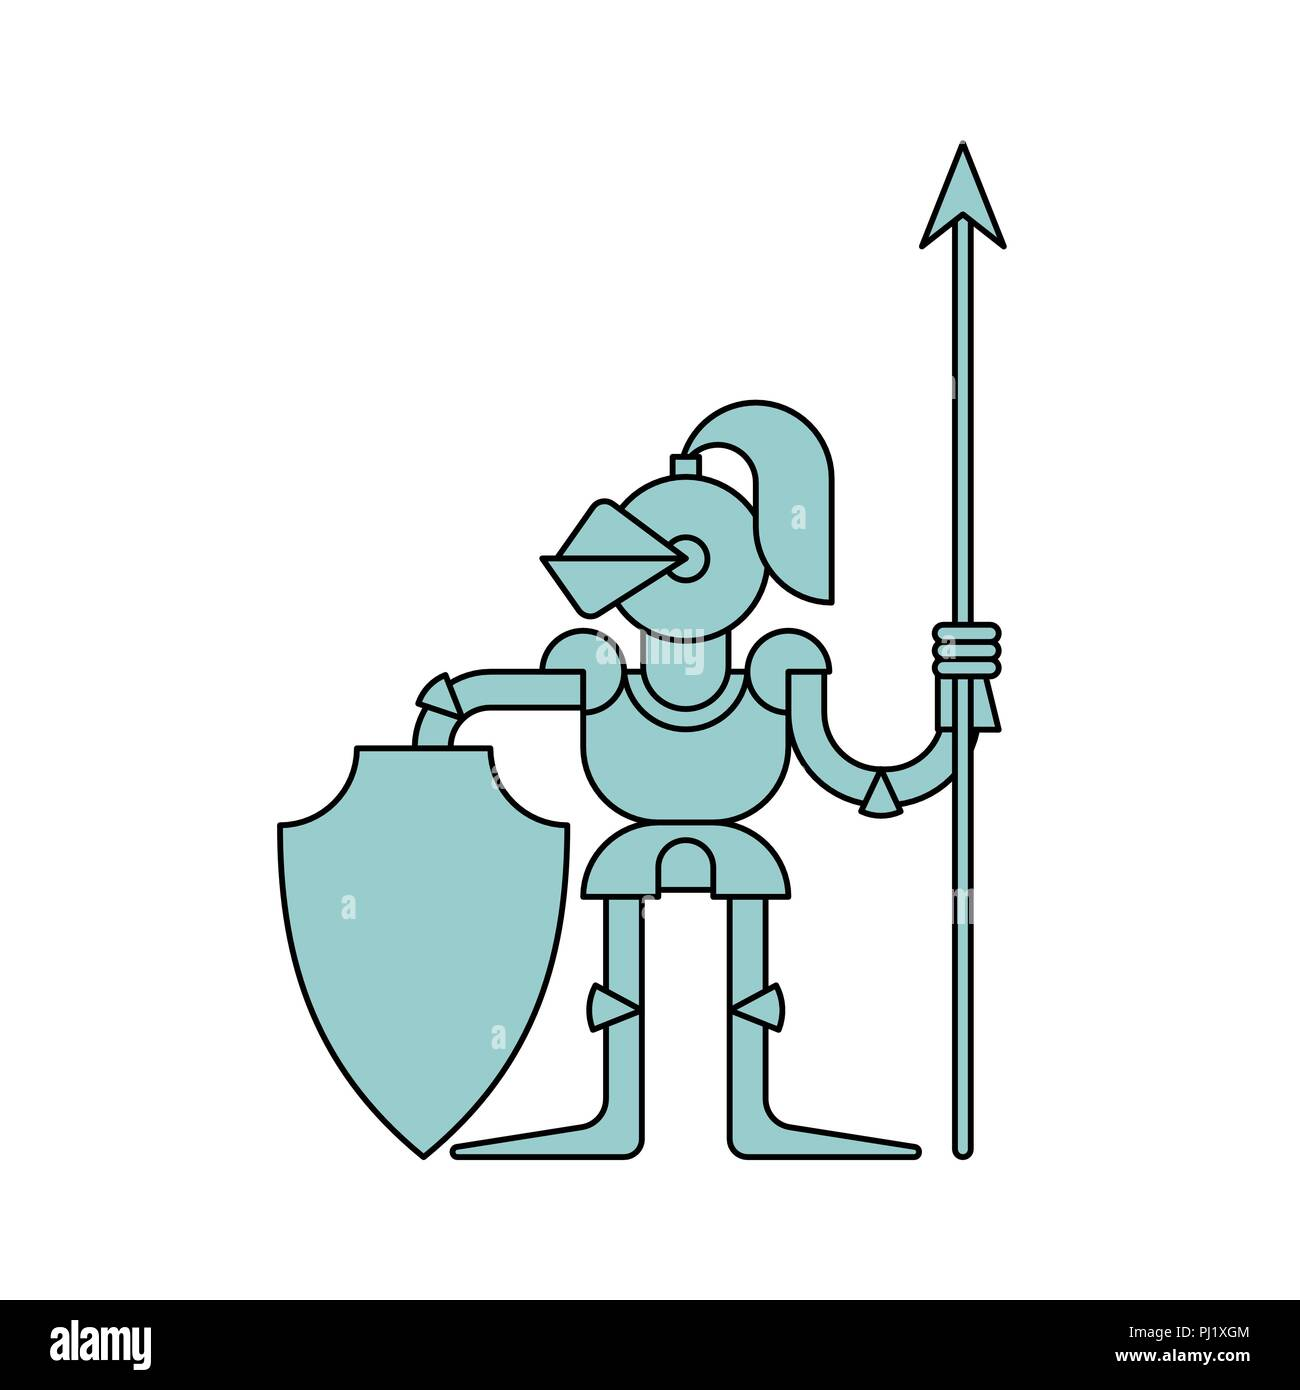 Medieval Costume Stock Vector Images - Alamy